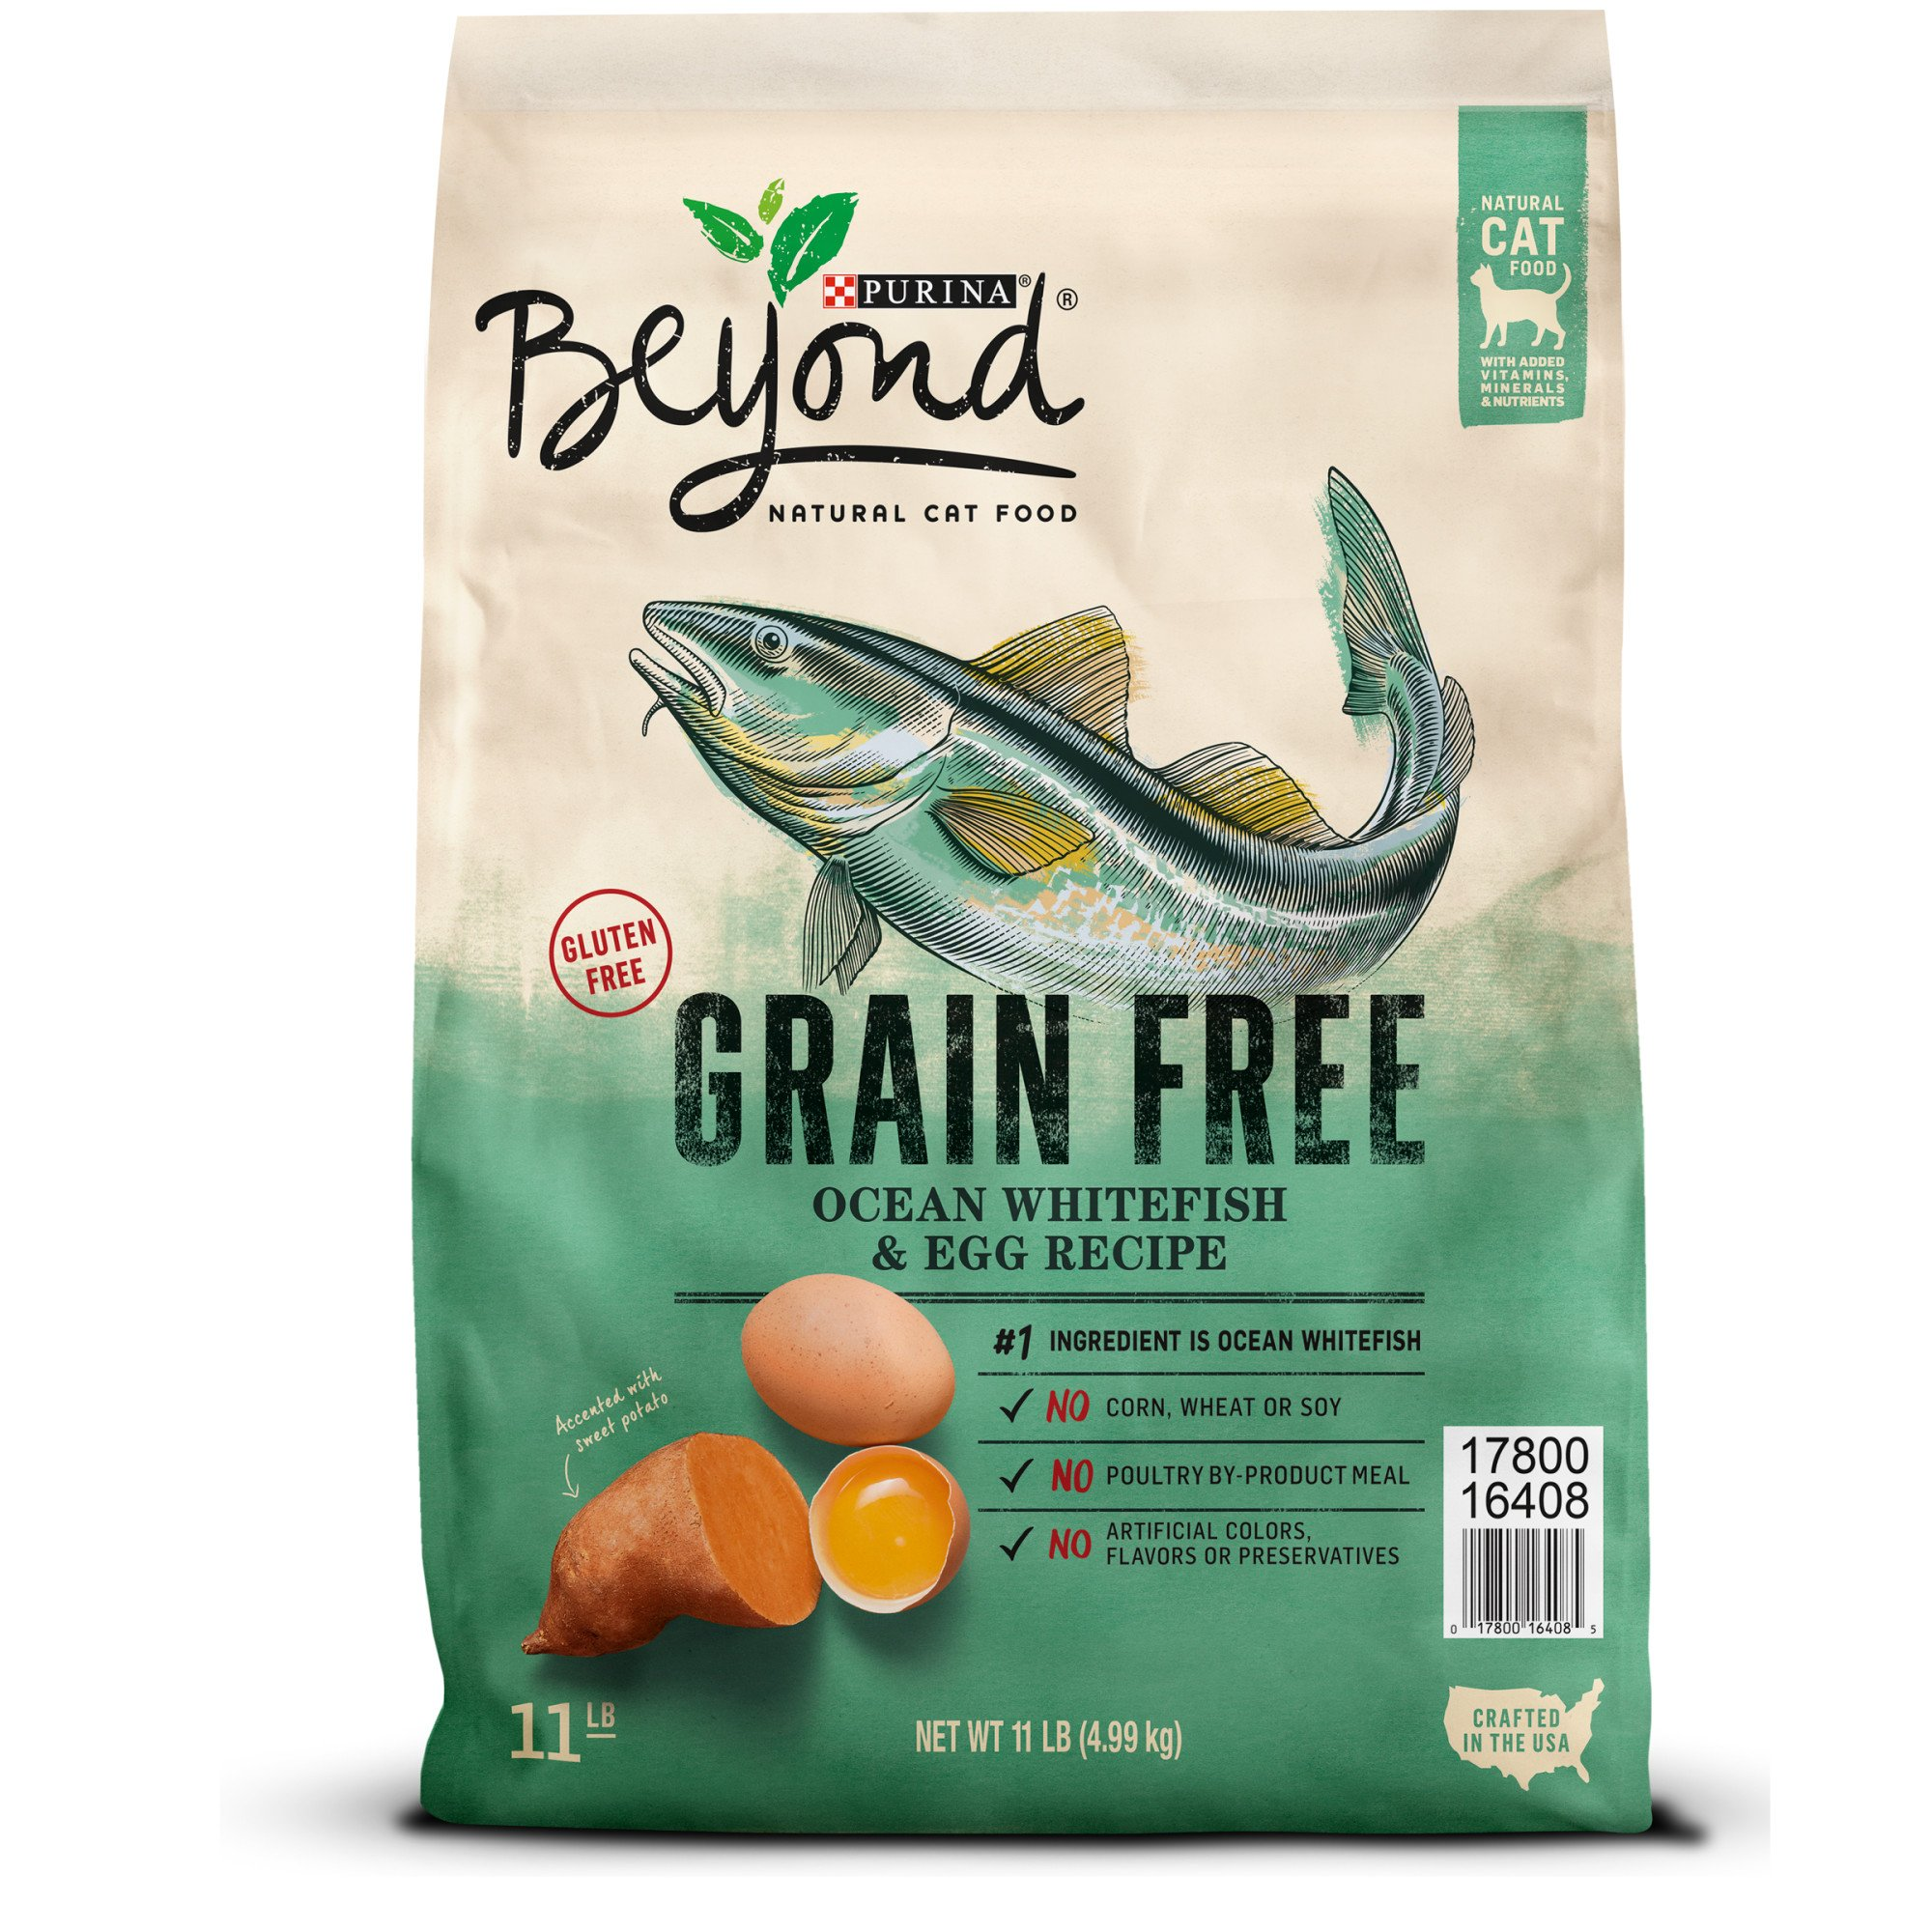 Purina Beyond Cat Food >> Purina Beyond Grain Free Ocean Whitefish & Egg Recipe Cat ...